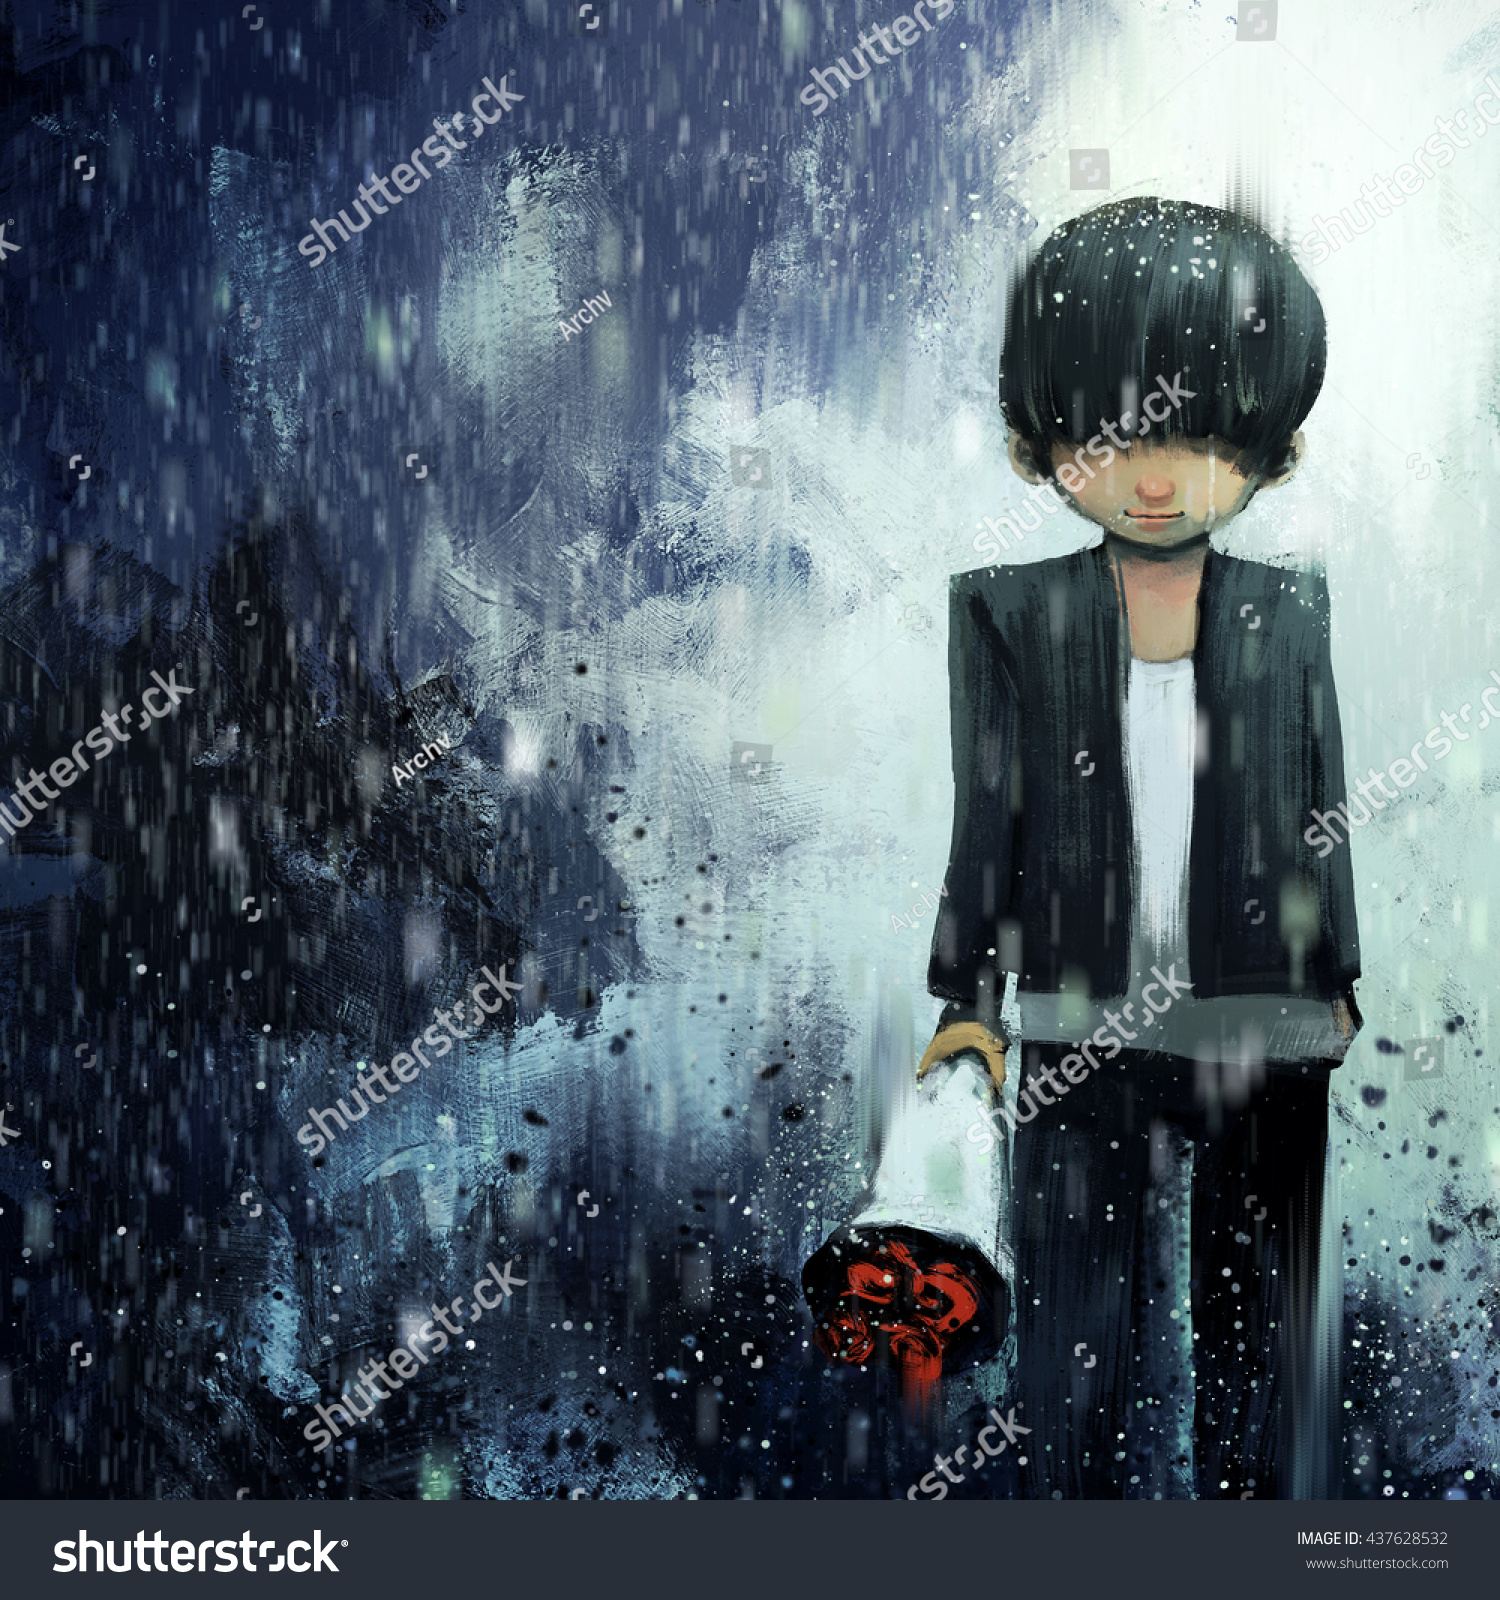 Digital painting of sad boy with bouquet in rainy day acrylic on canvas texture